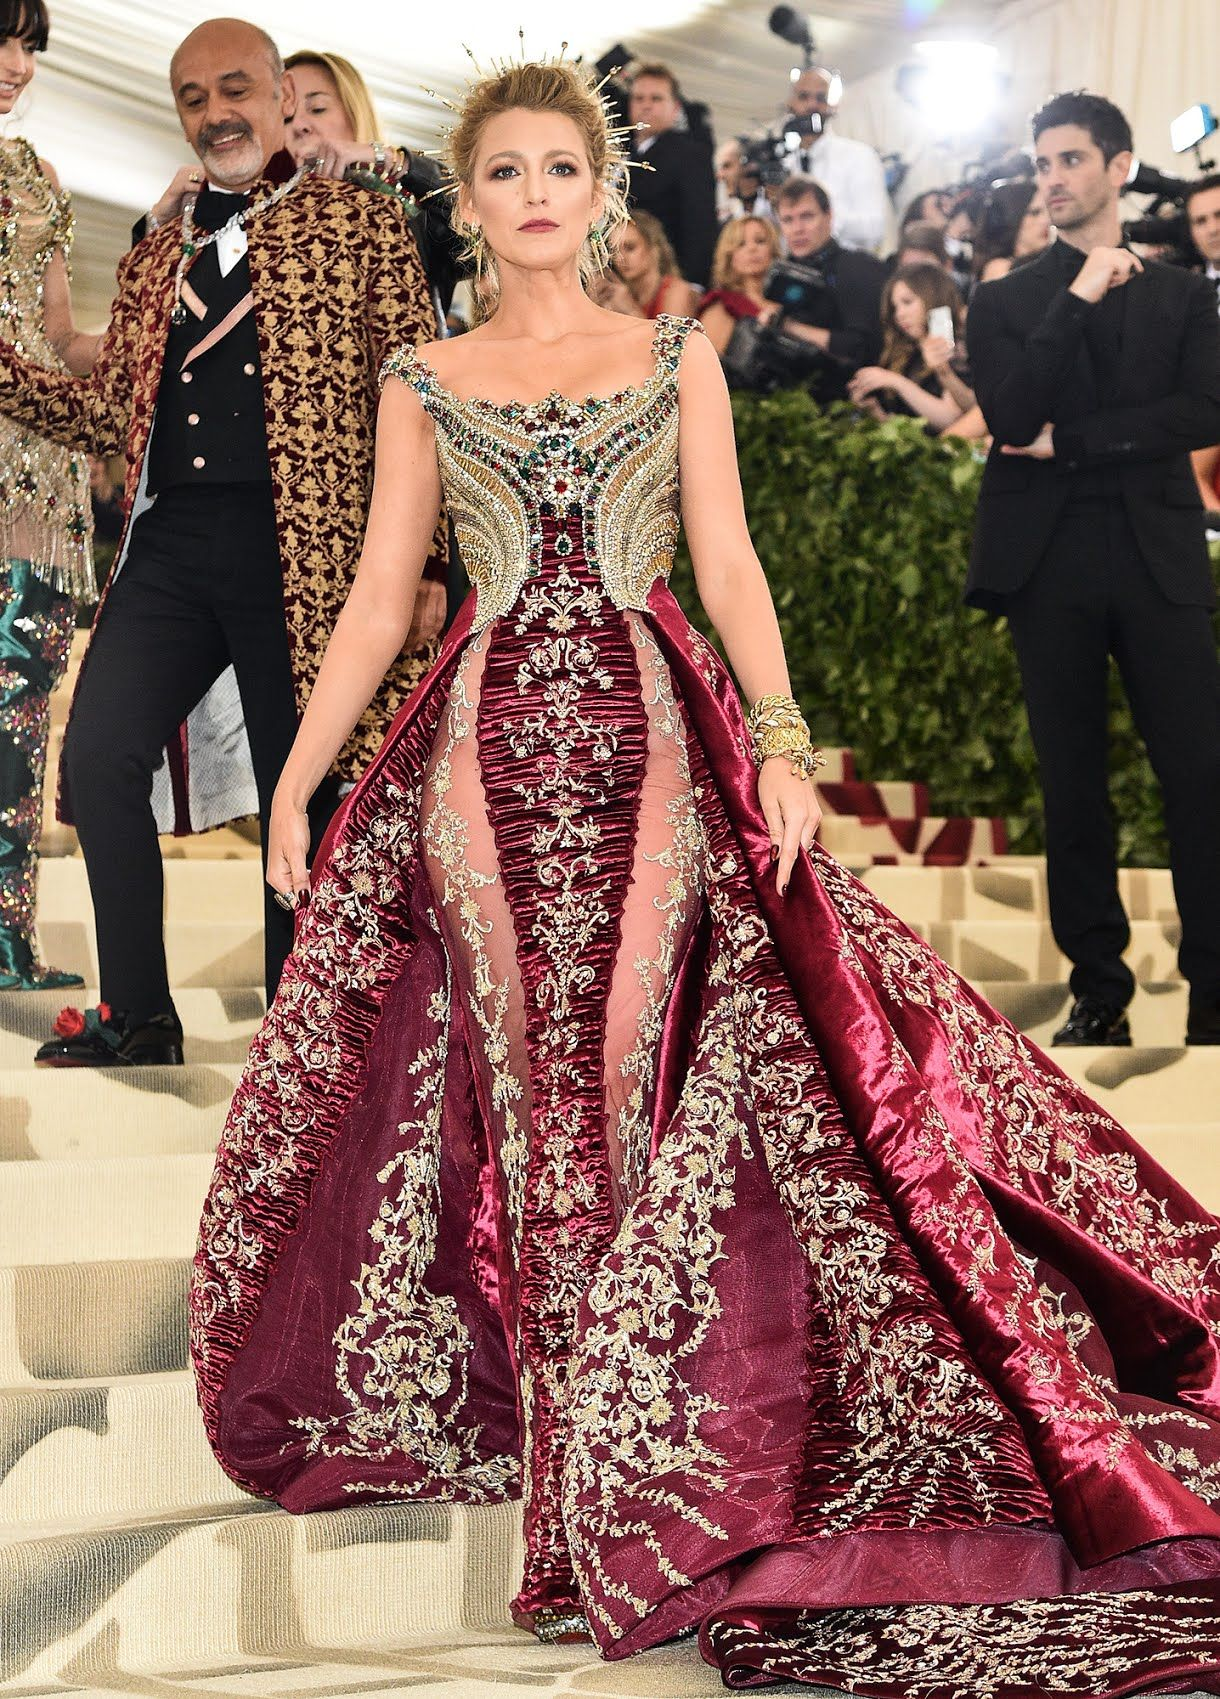 2576a15ed91 2018 Met Gala  Blake Lively is wearing a gorgeous red brocade Atelier  Versace gown with a train and gold headpiece. Blake stuns on the red carpet  as always!